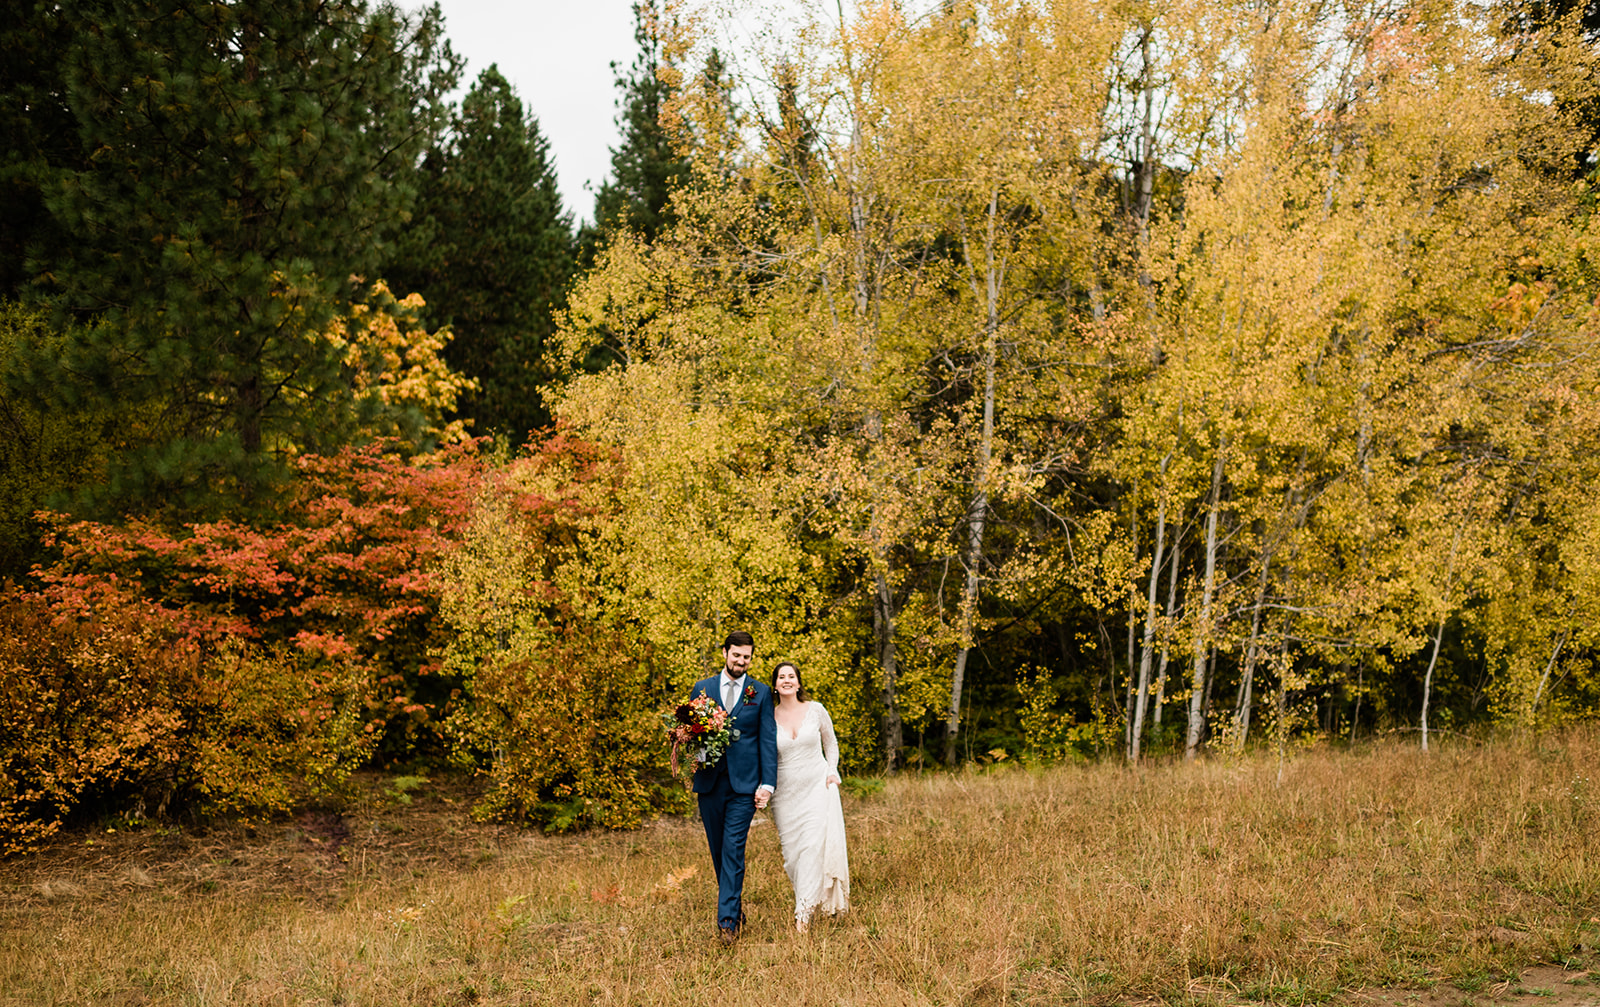 Jamie & Wilson at their colorful fall Leavenworth wedding at Brown Family Homstead. Image by Forthright Photo, Seattle wedding photographers